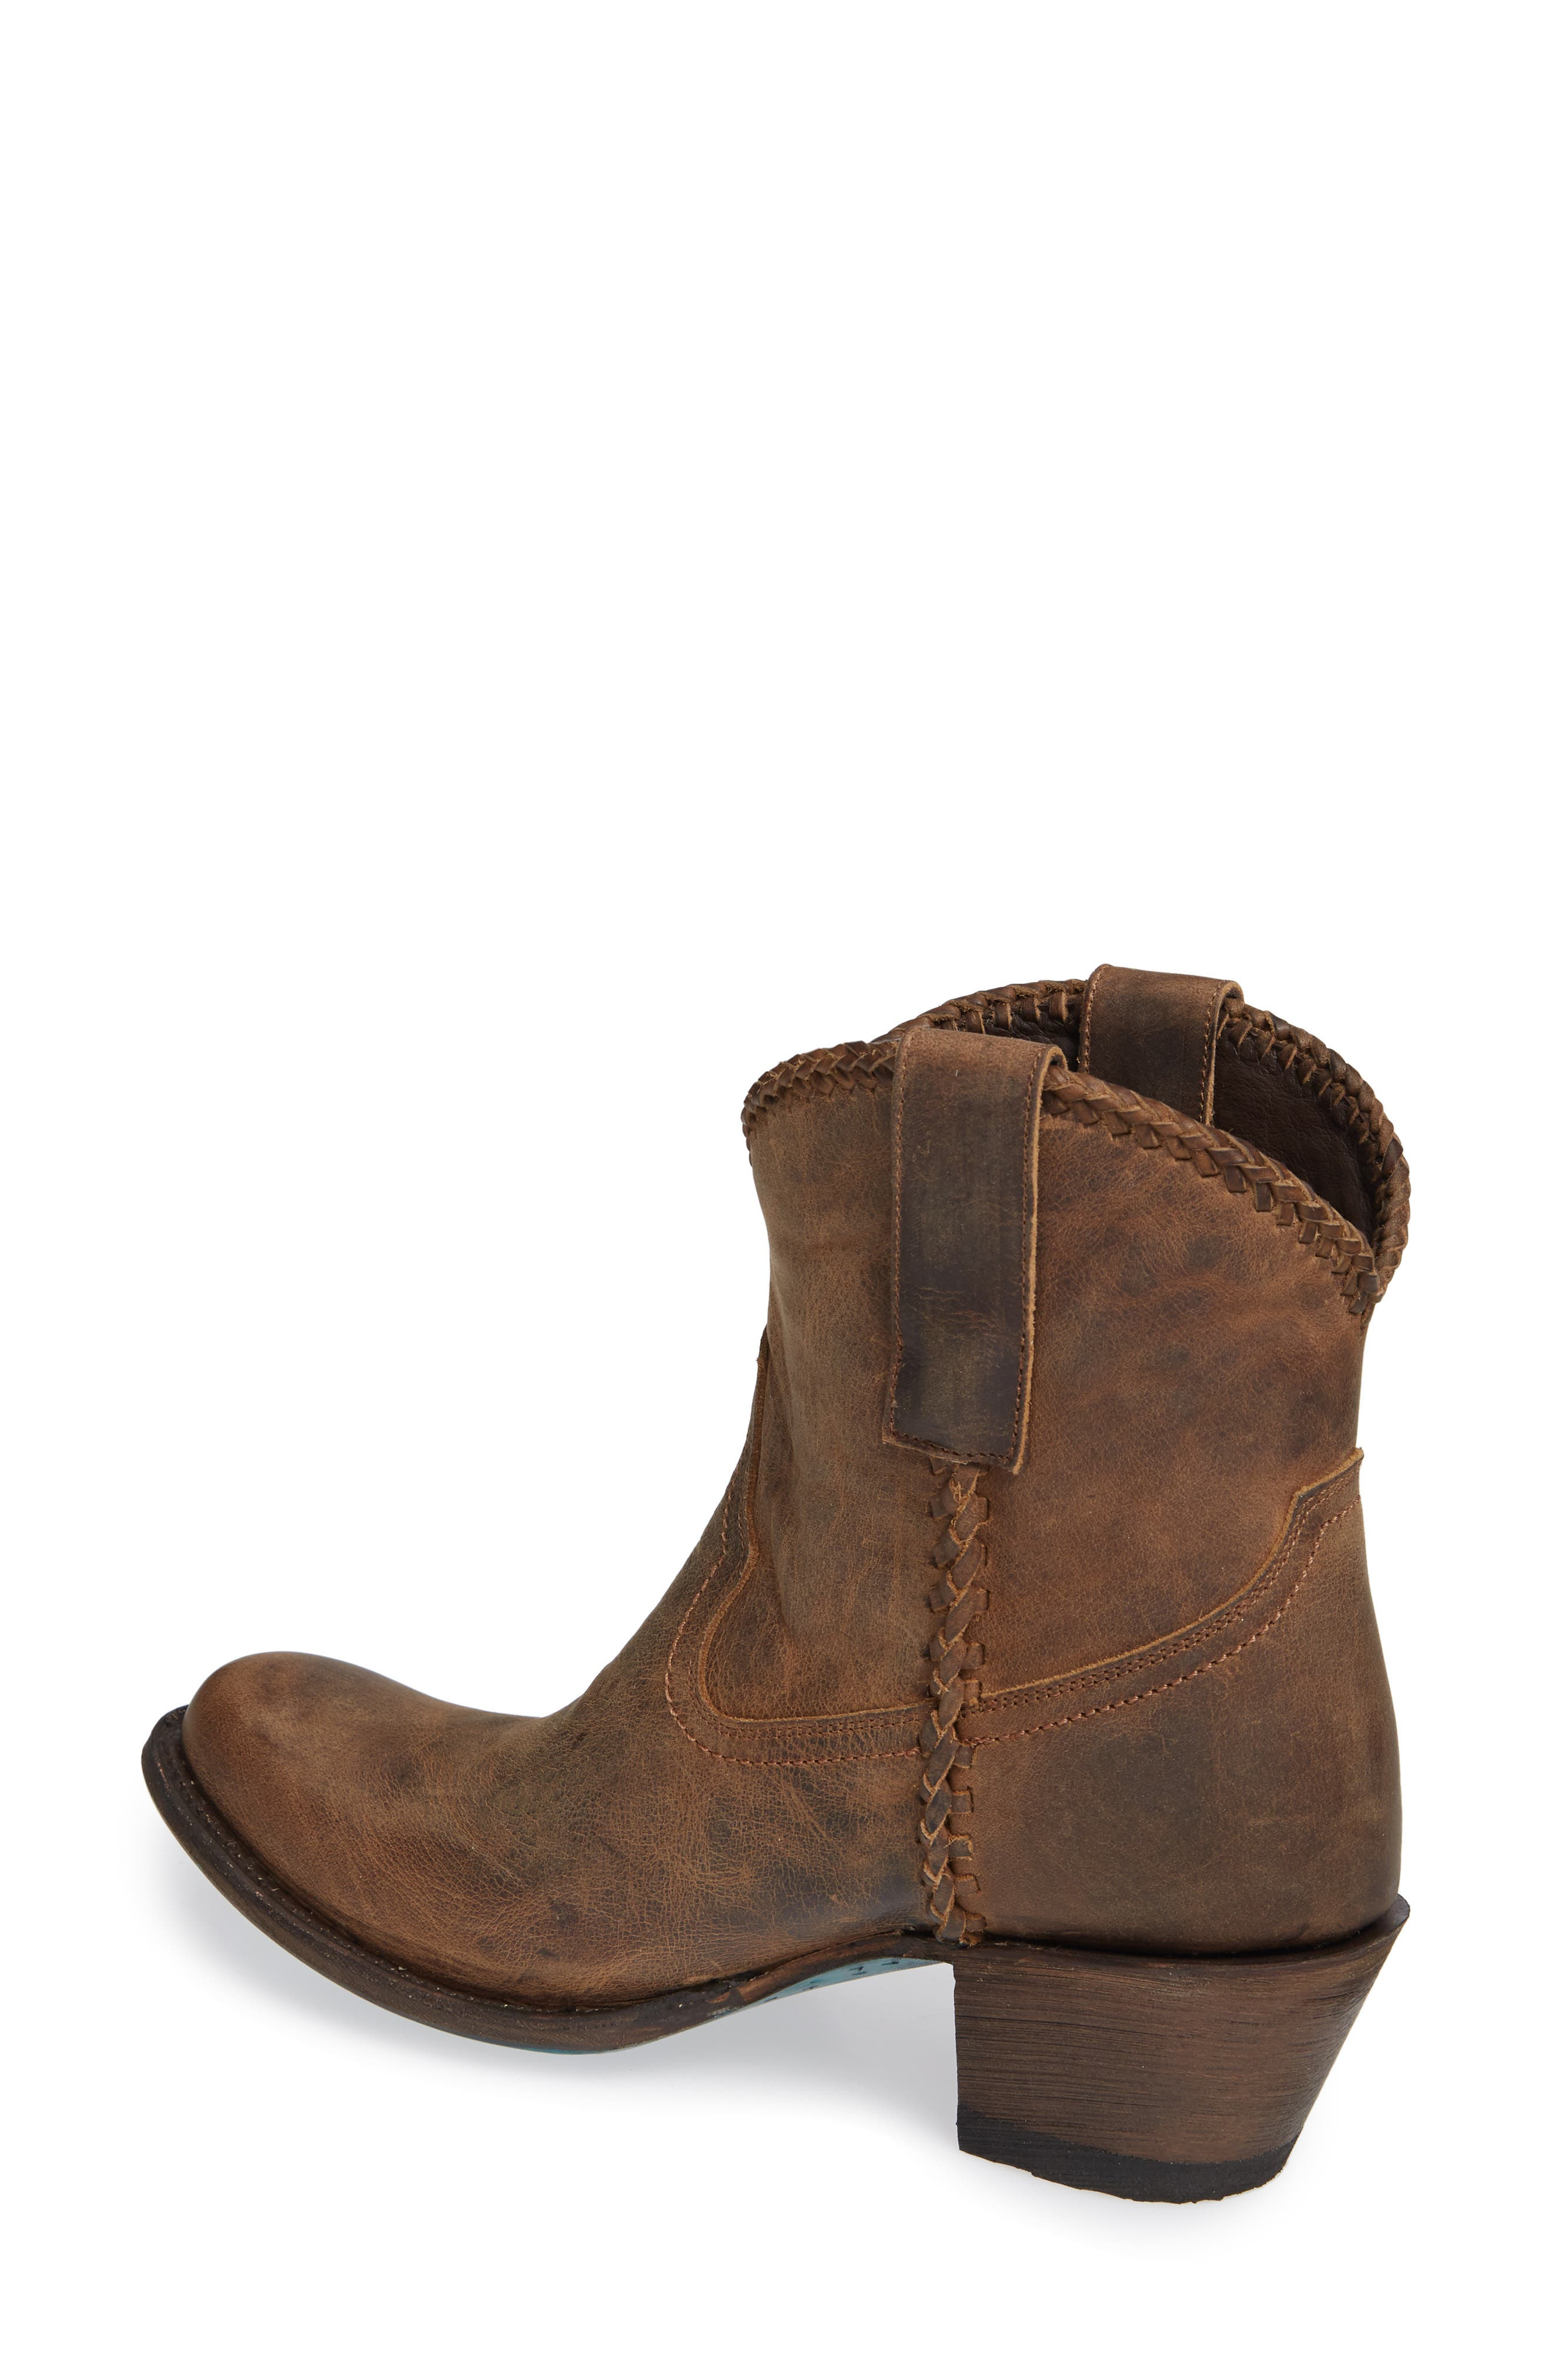 Plain Jane Western Boot,                             Alternate thumbnail 2, color,                             BROWN LEATHER